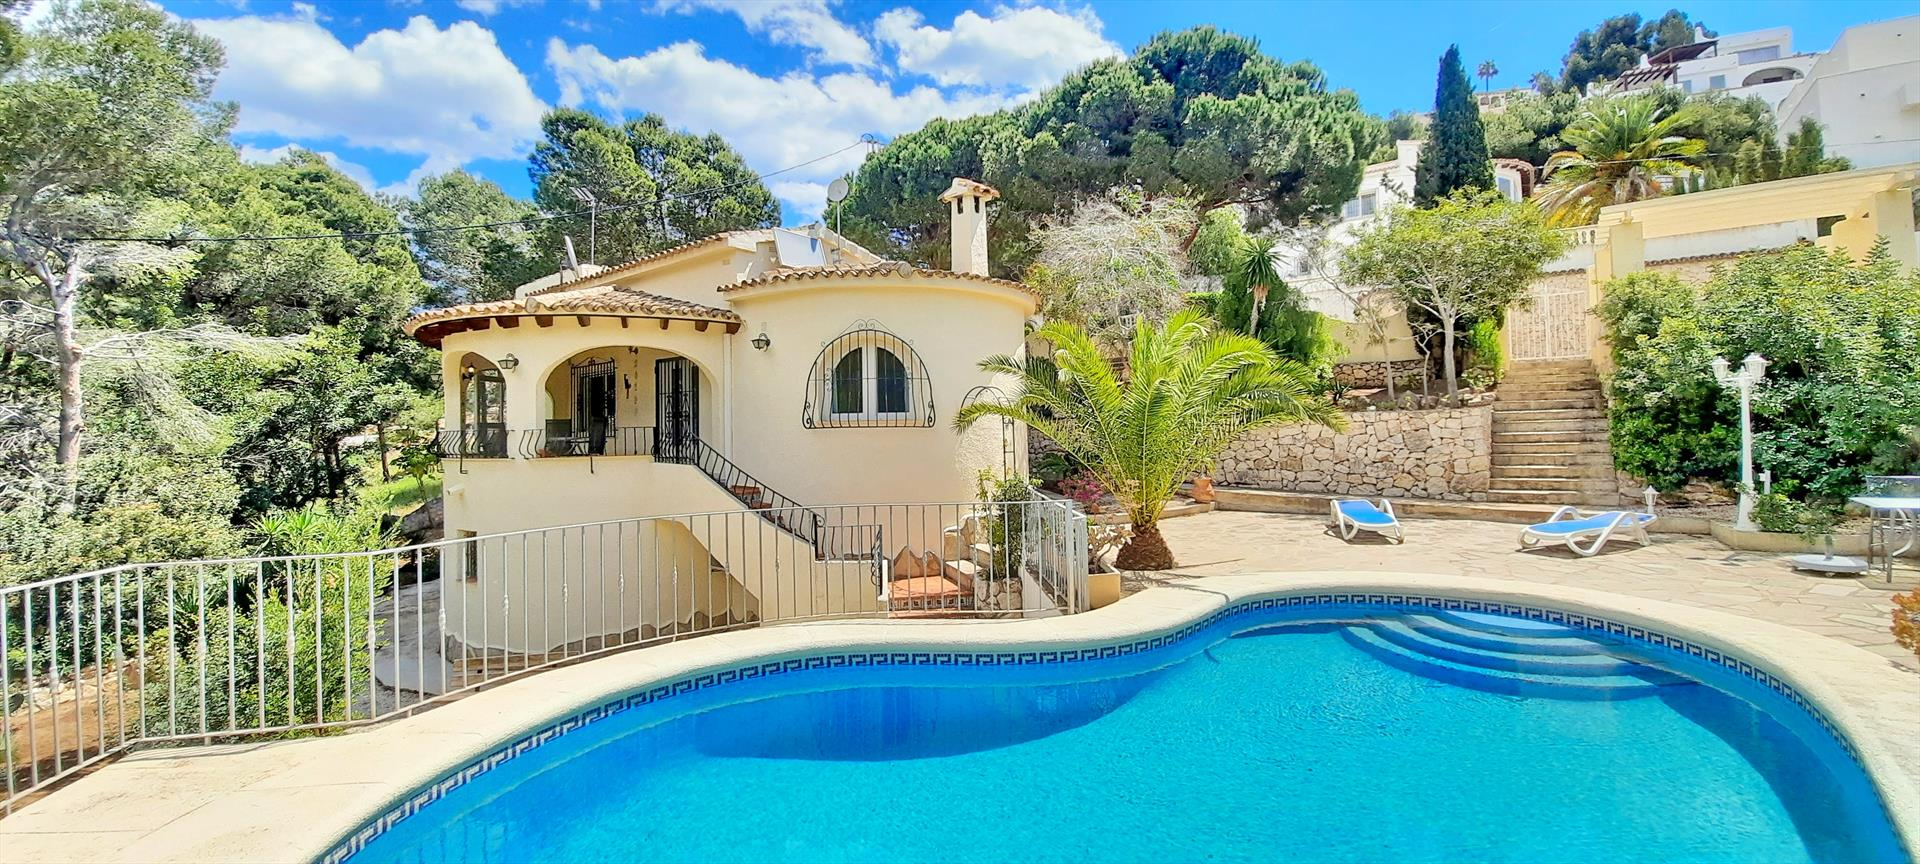 Villa La Belita, Wonderful and cheerful villa  with private pool in Moraira, on the Costa Blanca, Spain for 4 persons.....